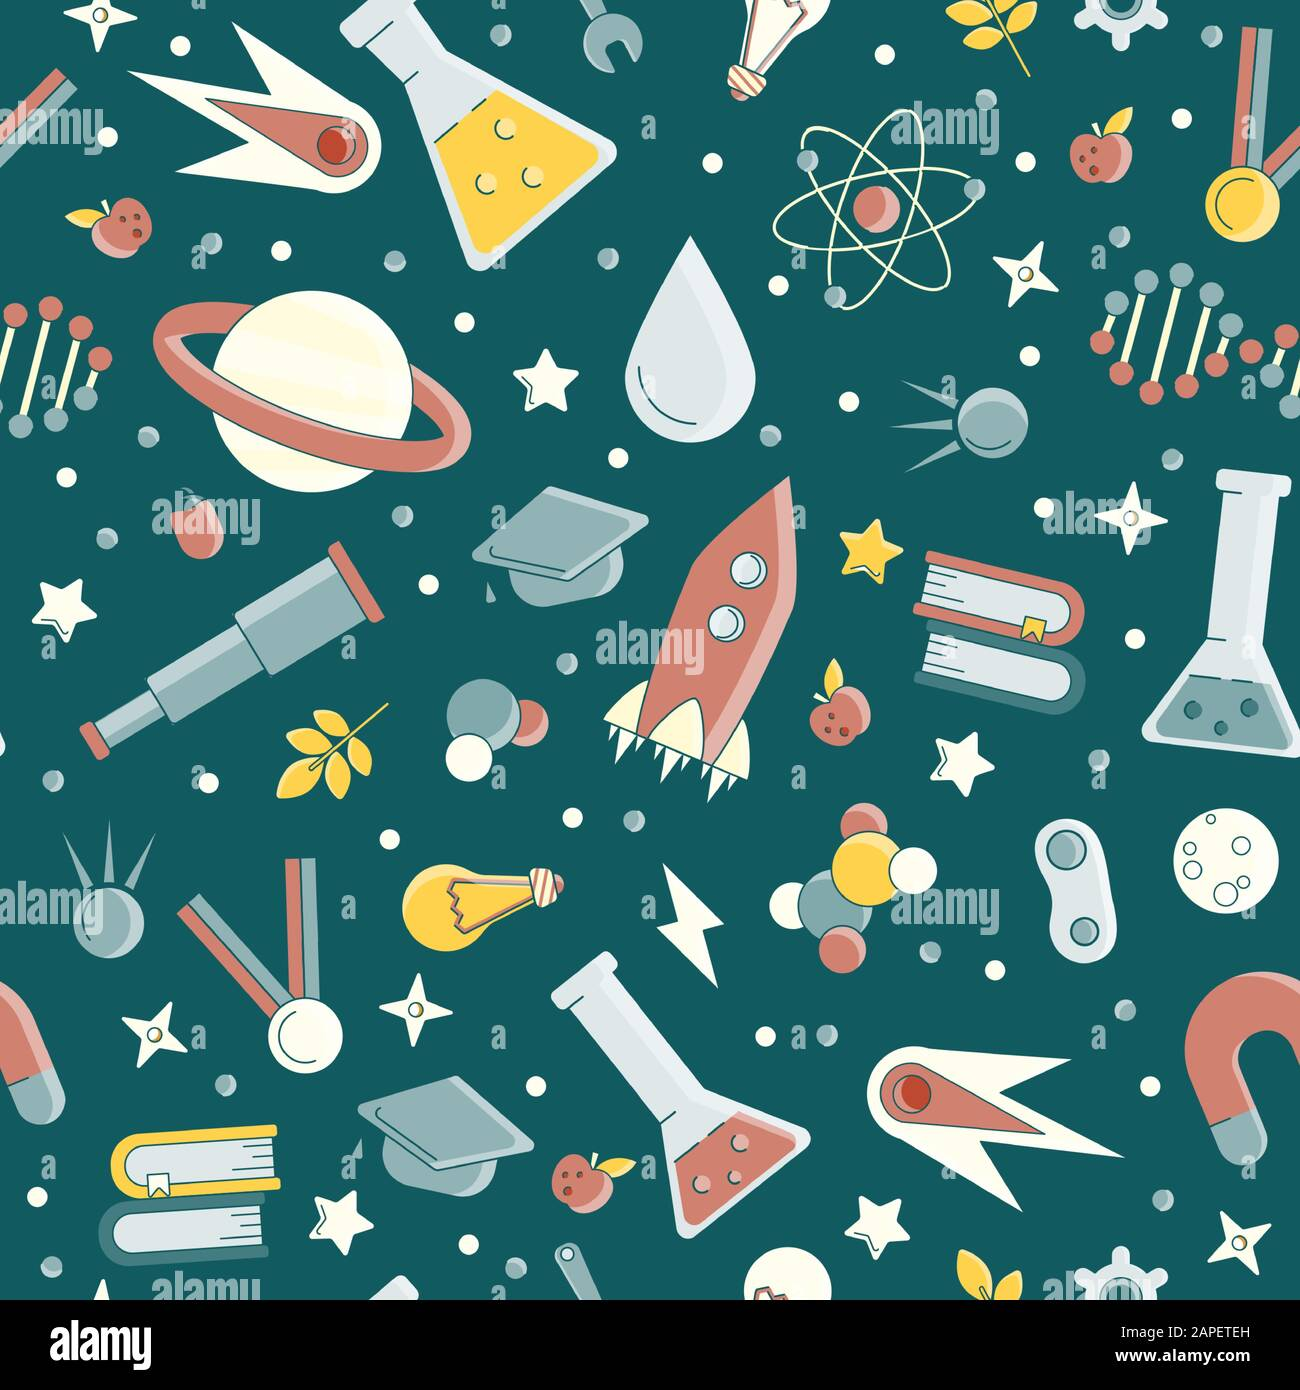 Back to school pattern. Science flat seamless pattern with scientific elements - molecule, atom structure, rocket, books, water and other on one Stock Vector